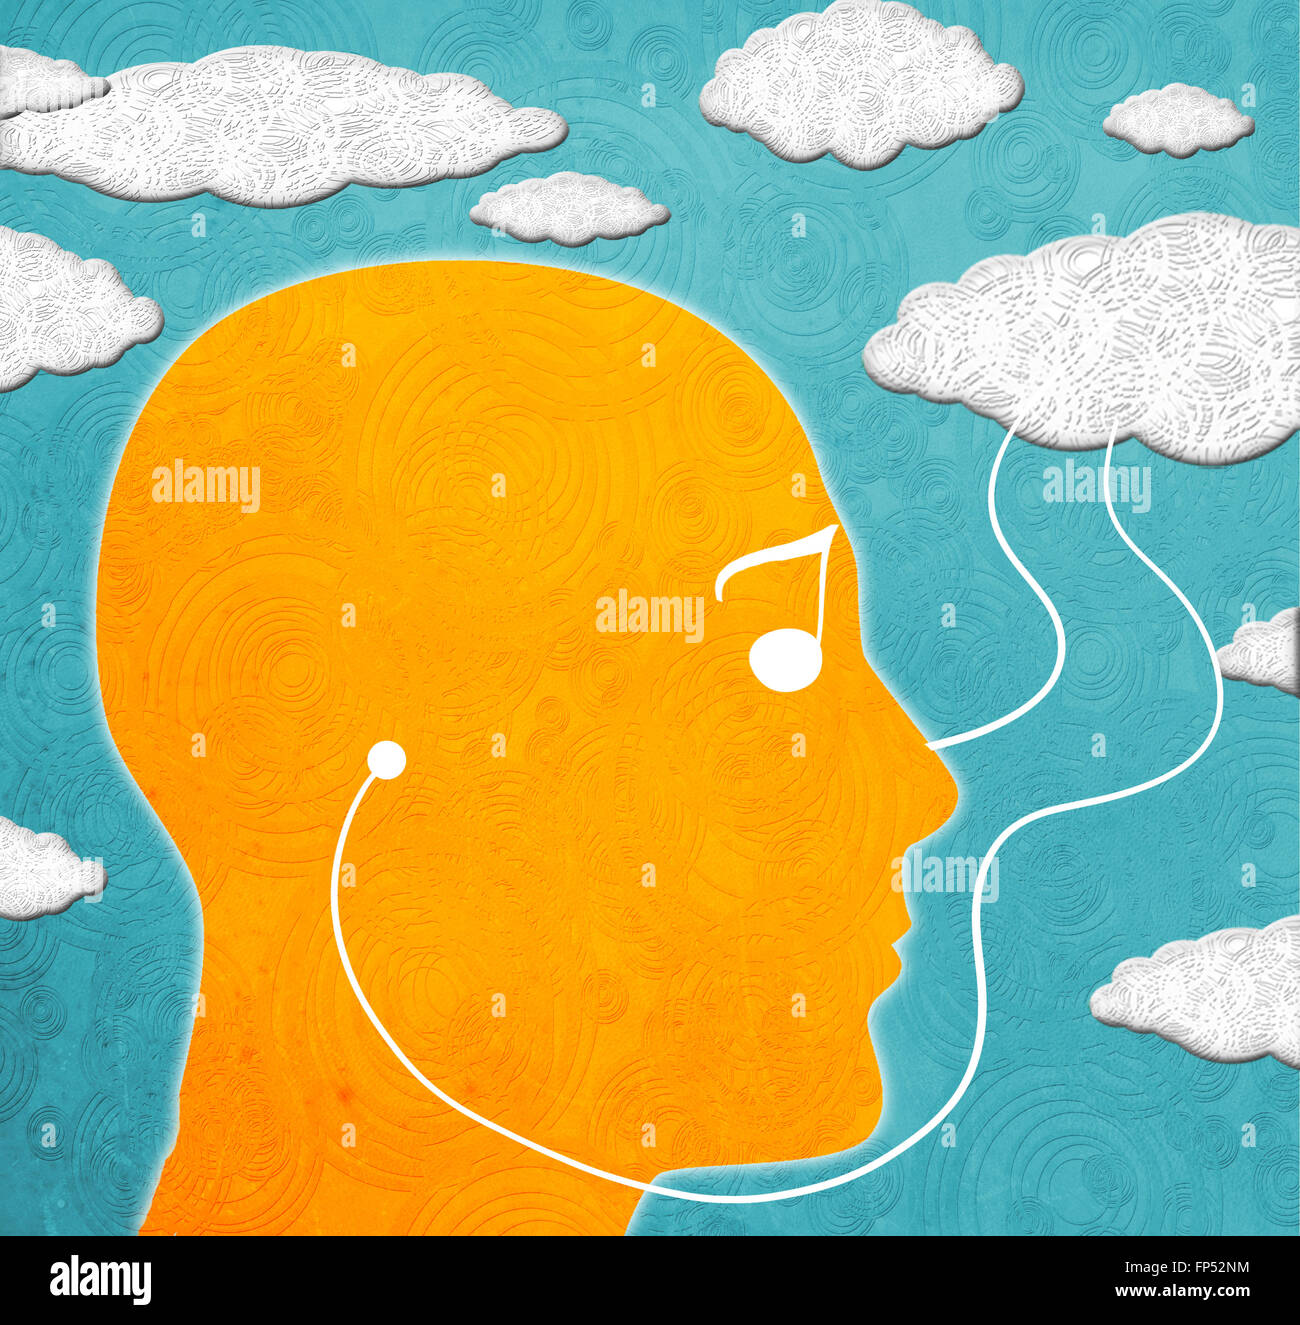 Il cloud computing musica illustrazione digitale Immagini Stock